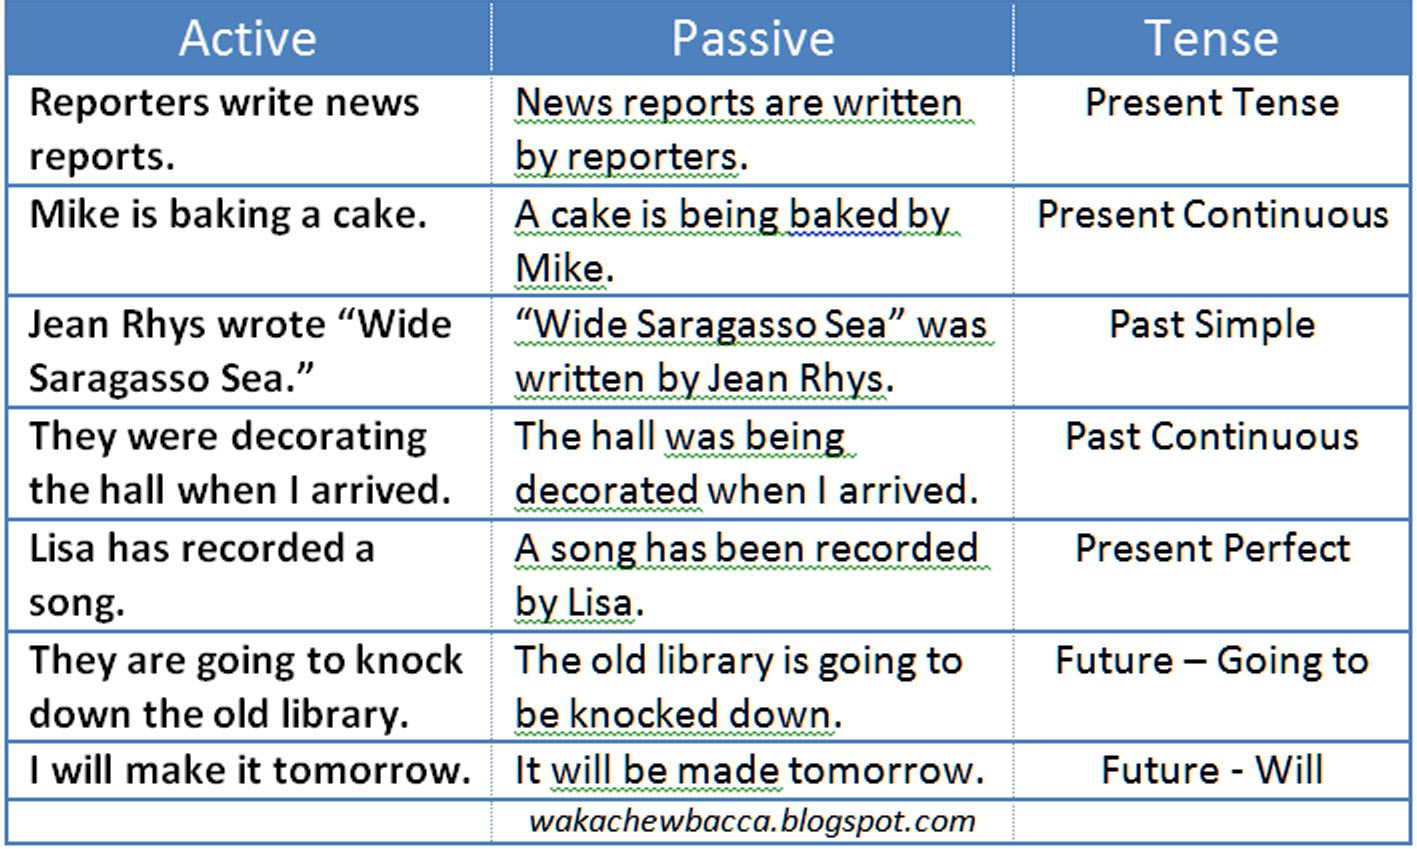 Active And Passive Voice With Tense With Images Active And